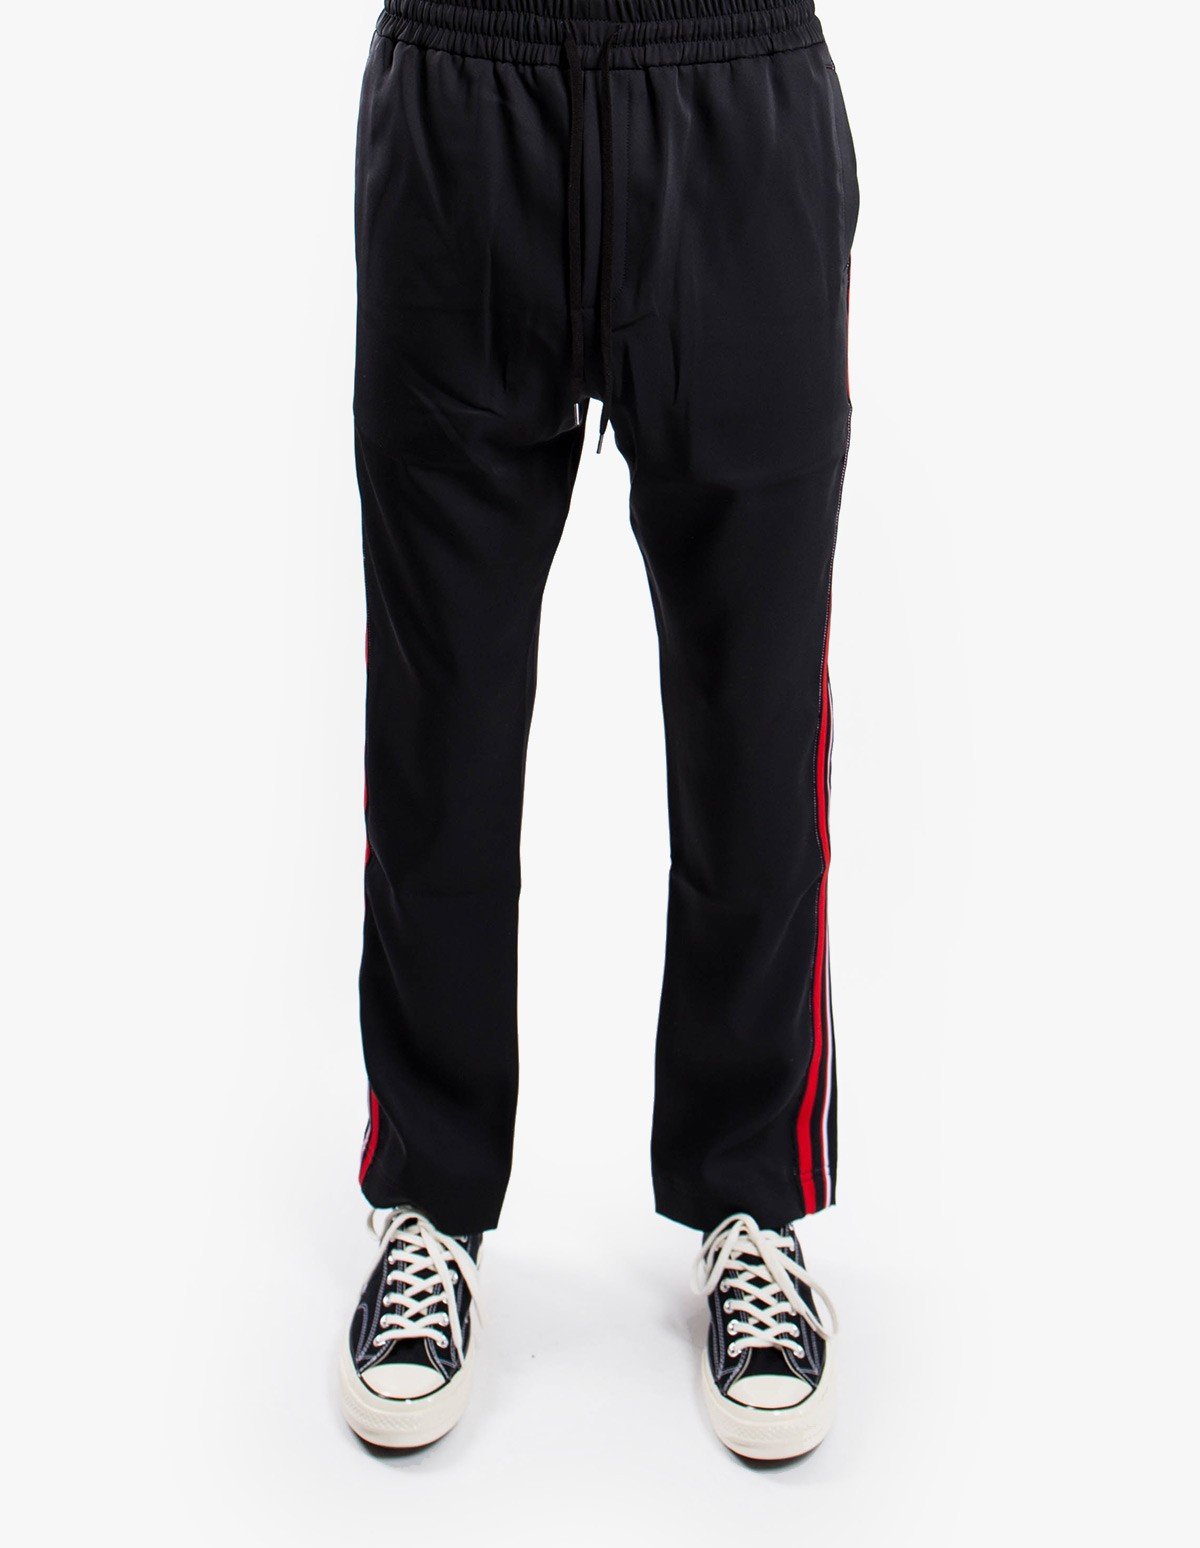 CMMN SWDN Buck Track Pants in Black / Red